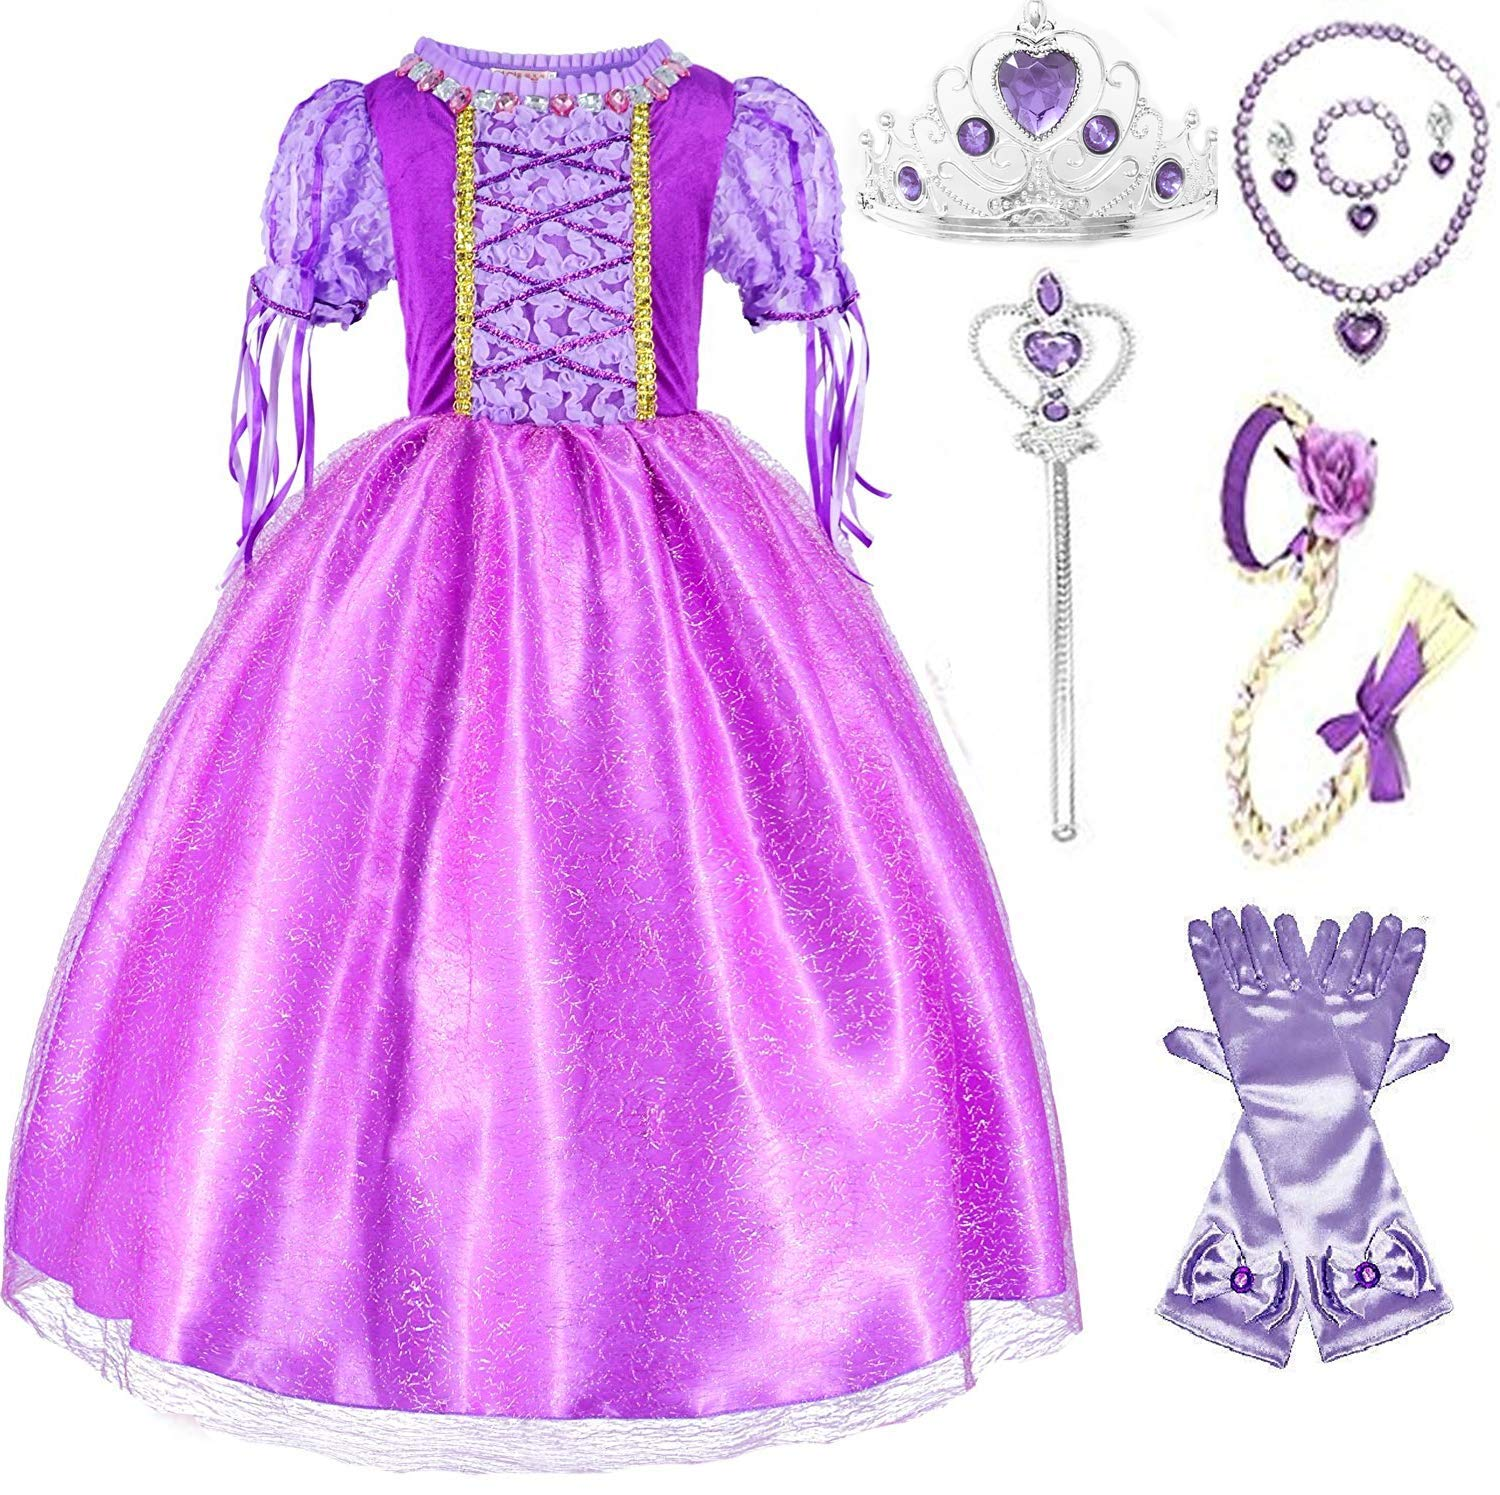 SweetNicole Princess Rapunzel Purple Princess Party Costume Dress with Accessories (7-8) by SweetNicole (Image #1)